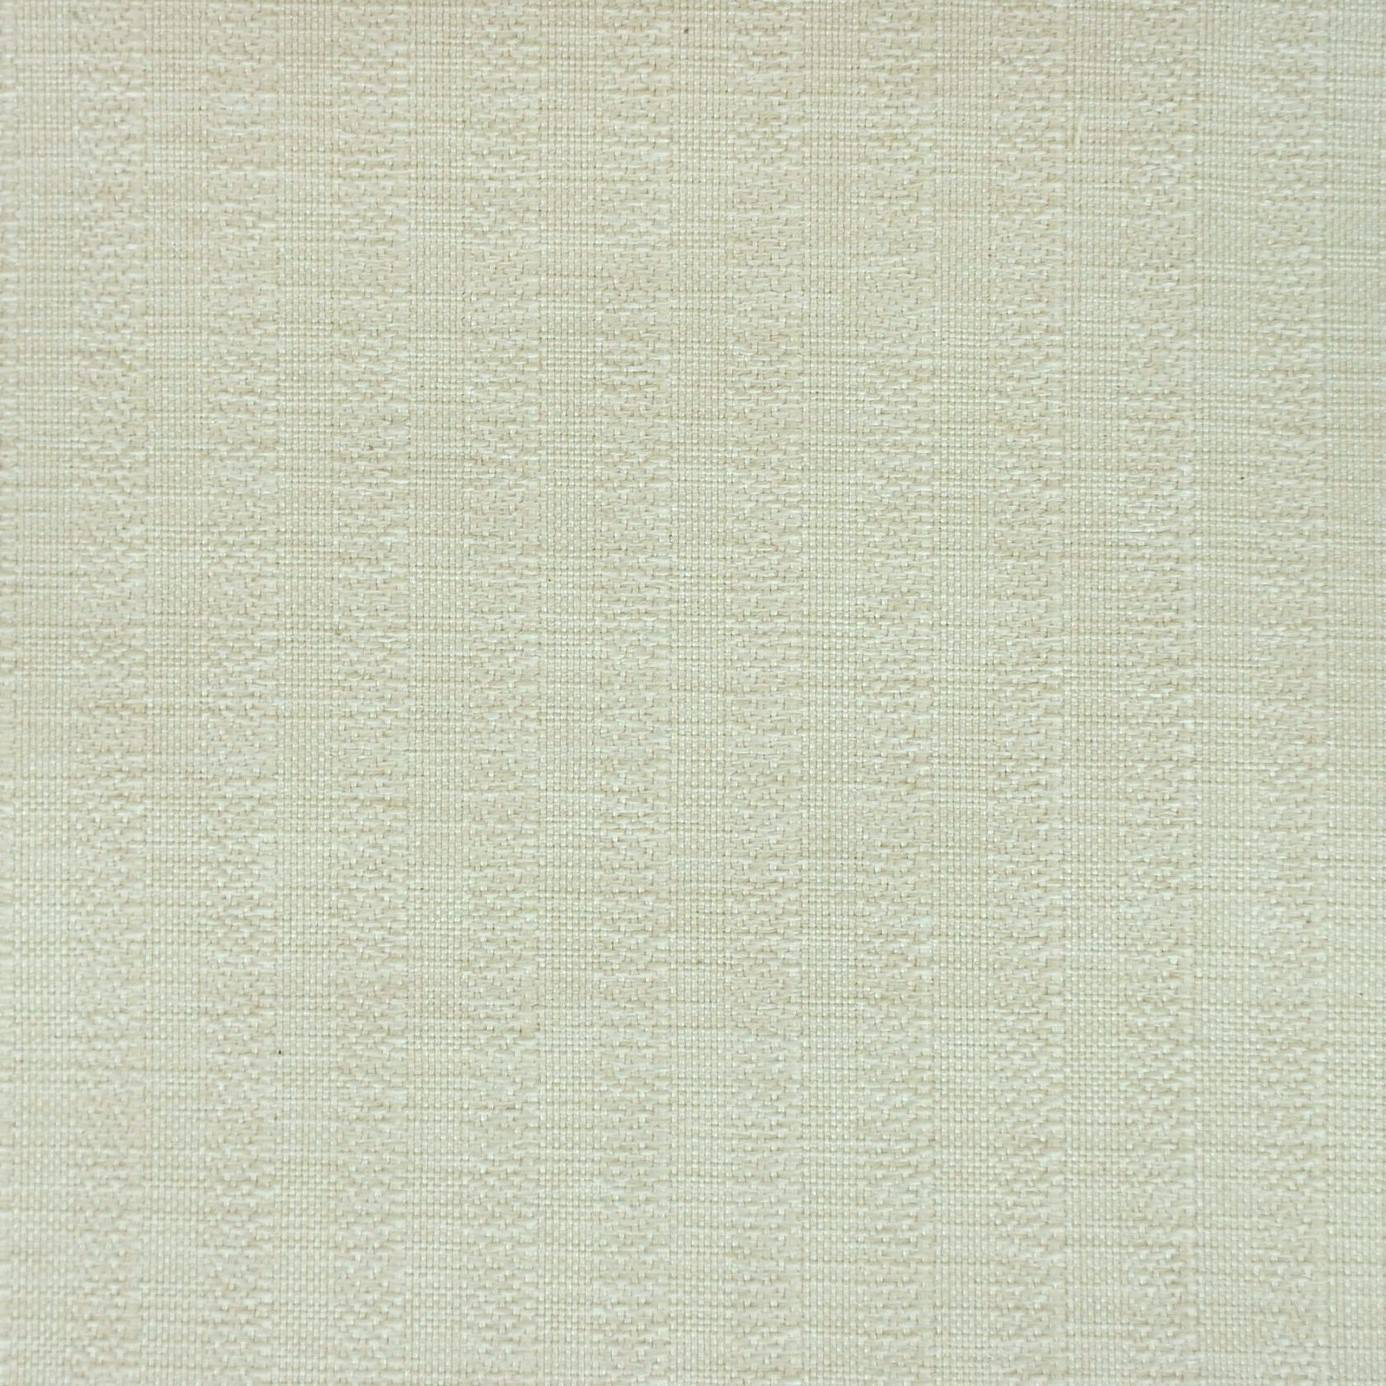 fabrics and papers discount code Discount wallpaper superstore shop inside wallpaper for the lowest prices anywhere on wallcovering fabric cleaning codes call_made fabric estimator.